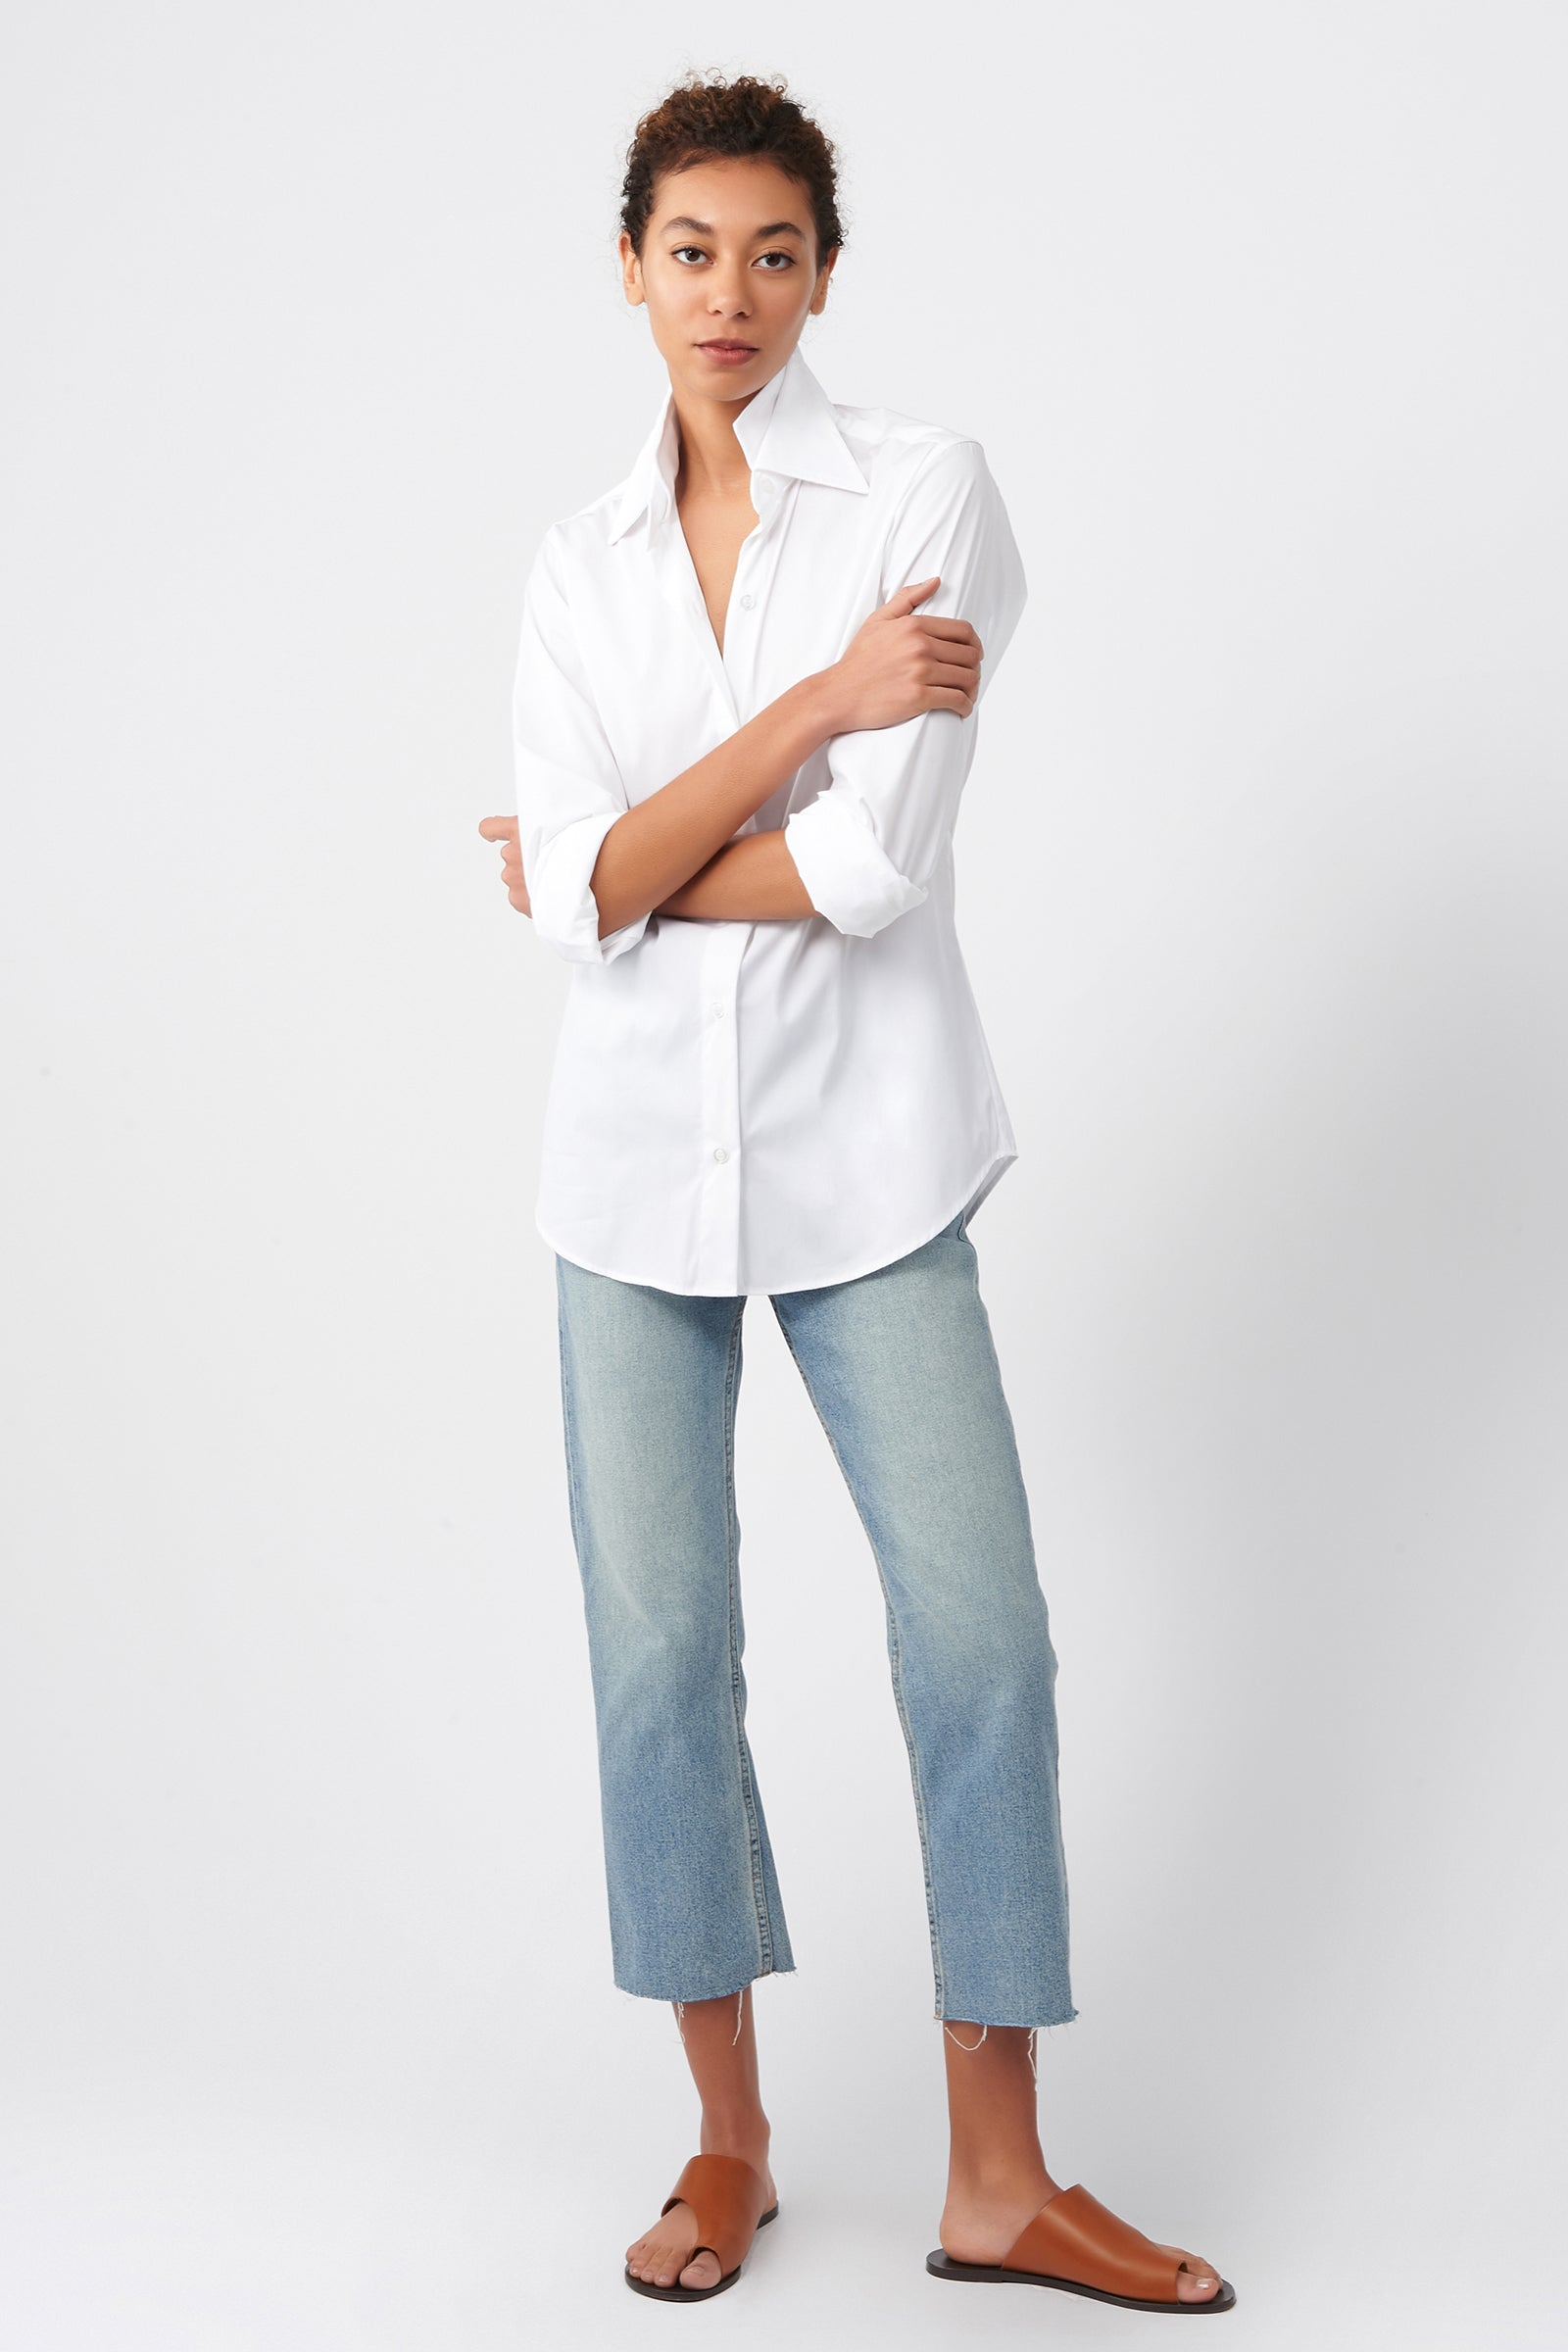 Kal Rieman Double Collar Shirt in White Cotton on Model Front View